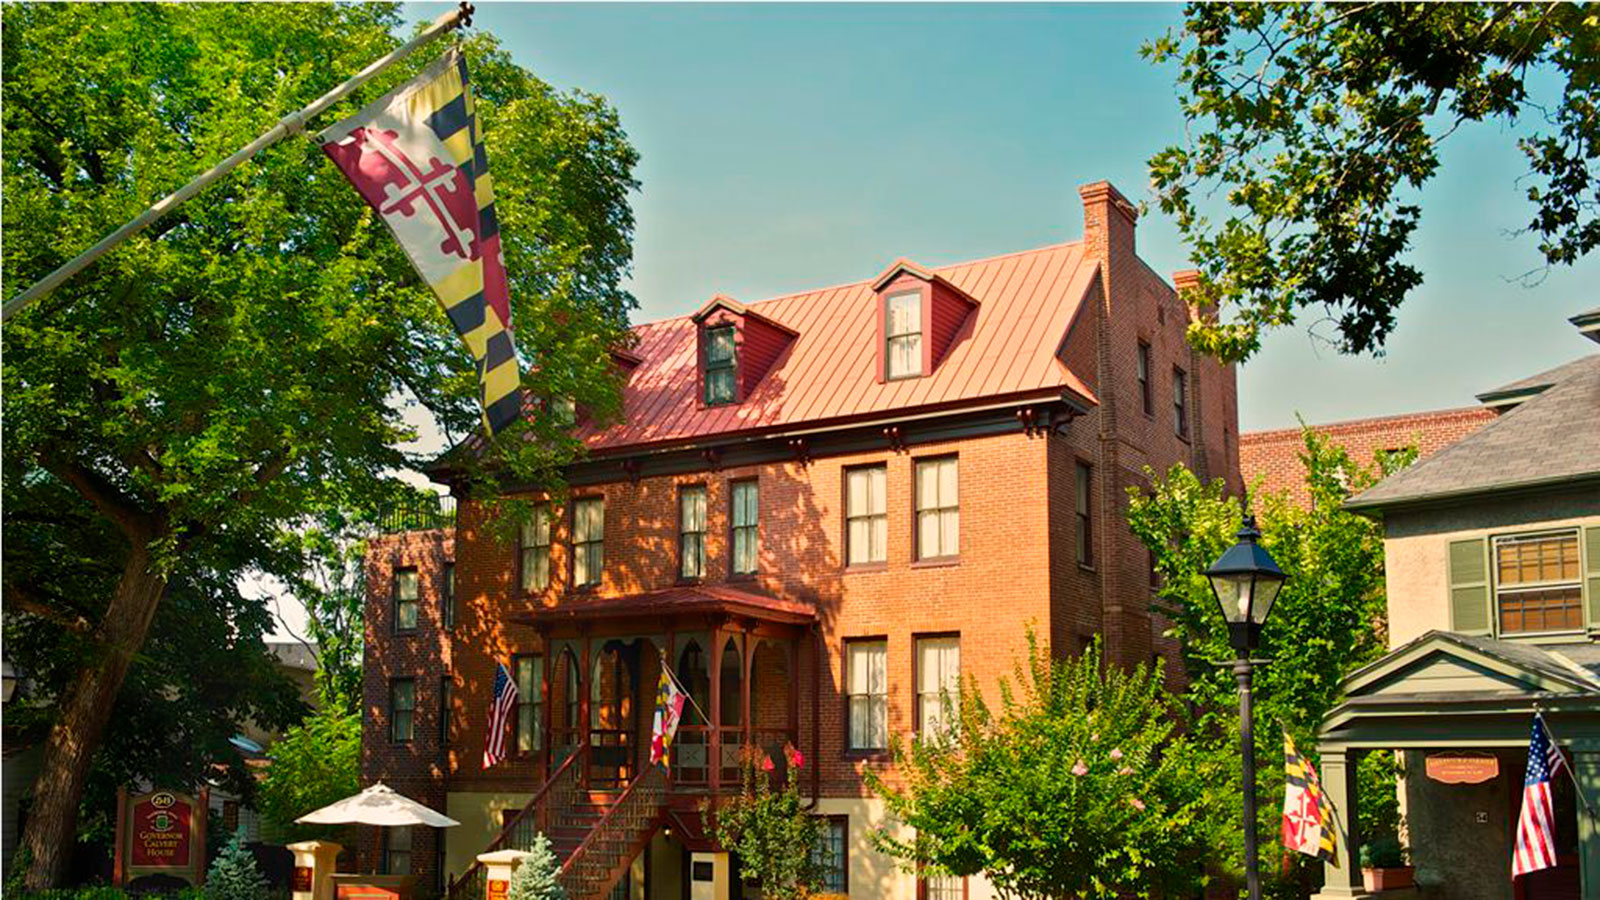 Image of Hotel Exterior, Historic Inns of Annapolis in Annapolis, Maryland, 1727, Member of Historic Hotels of America, Overview